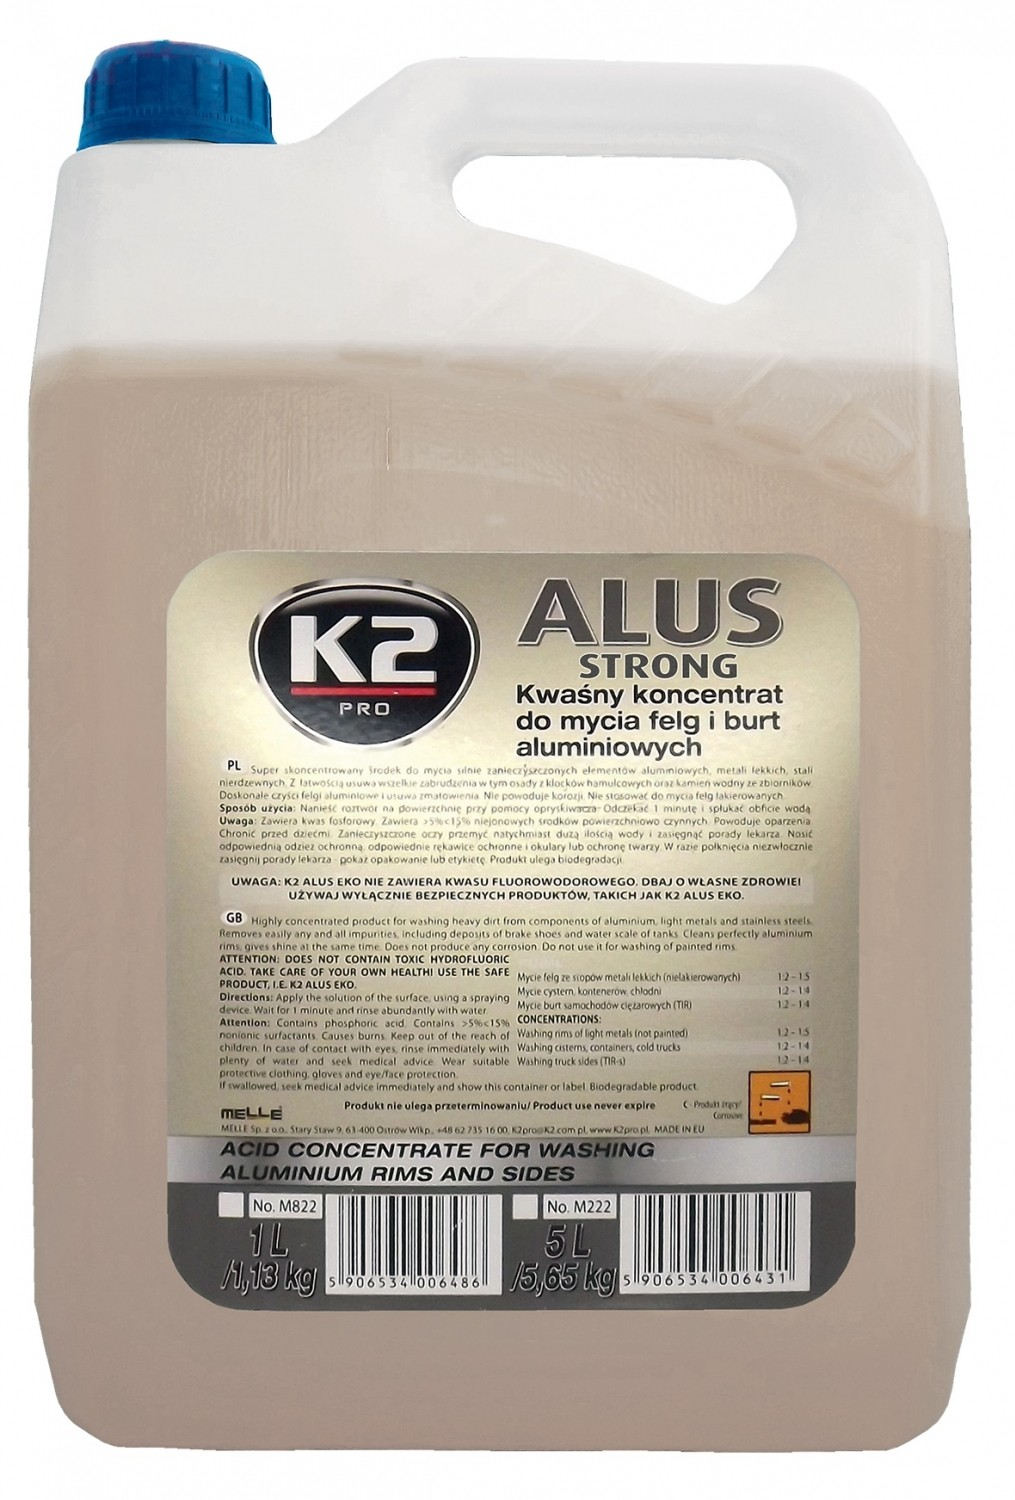 K2 ALUS STRONG 5 L